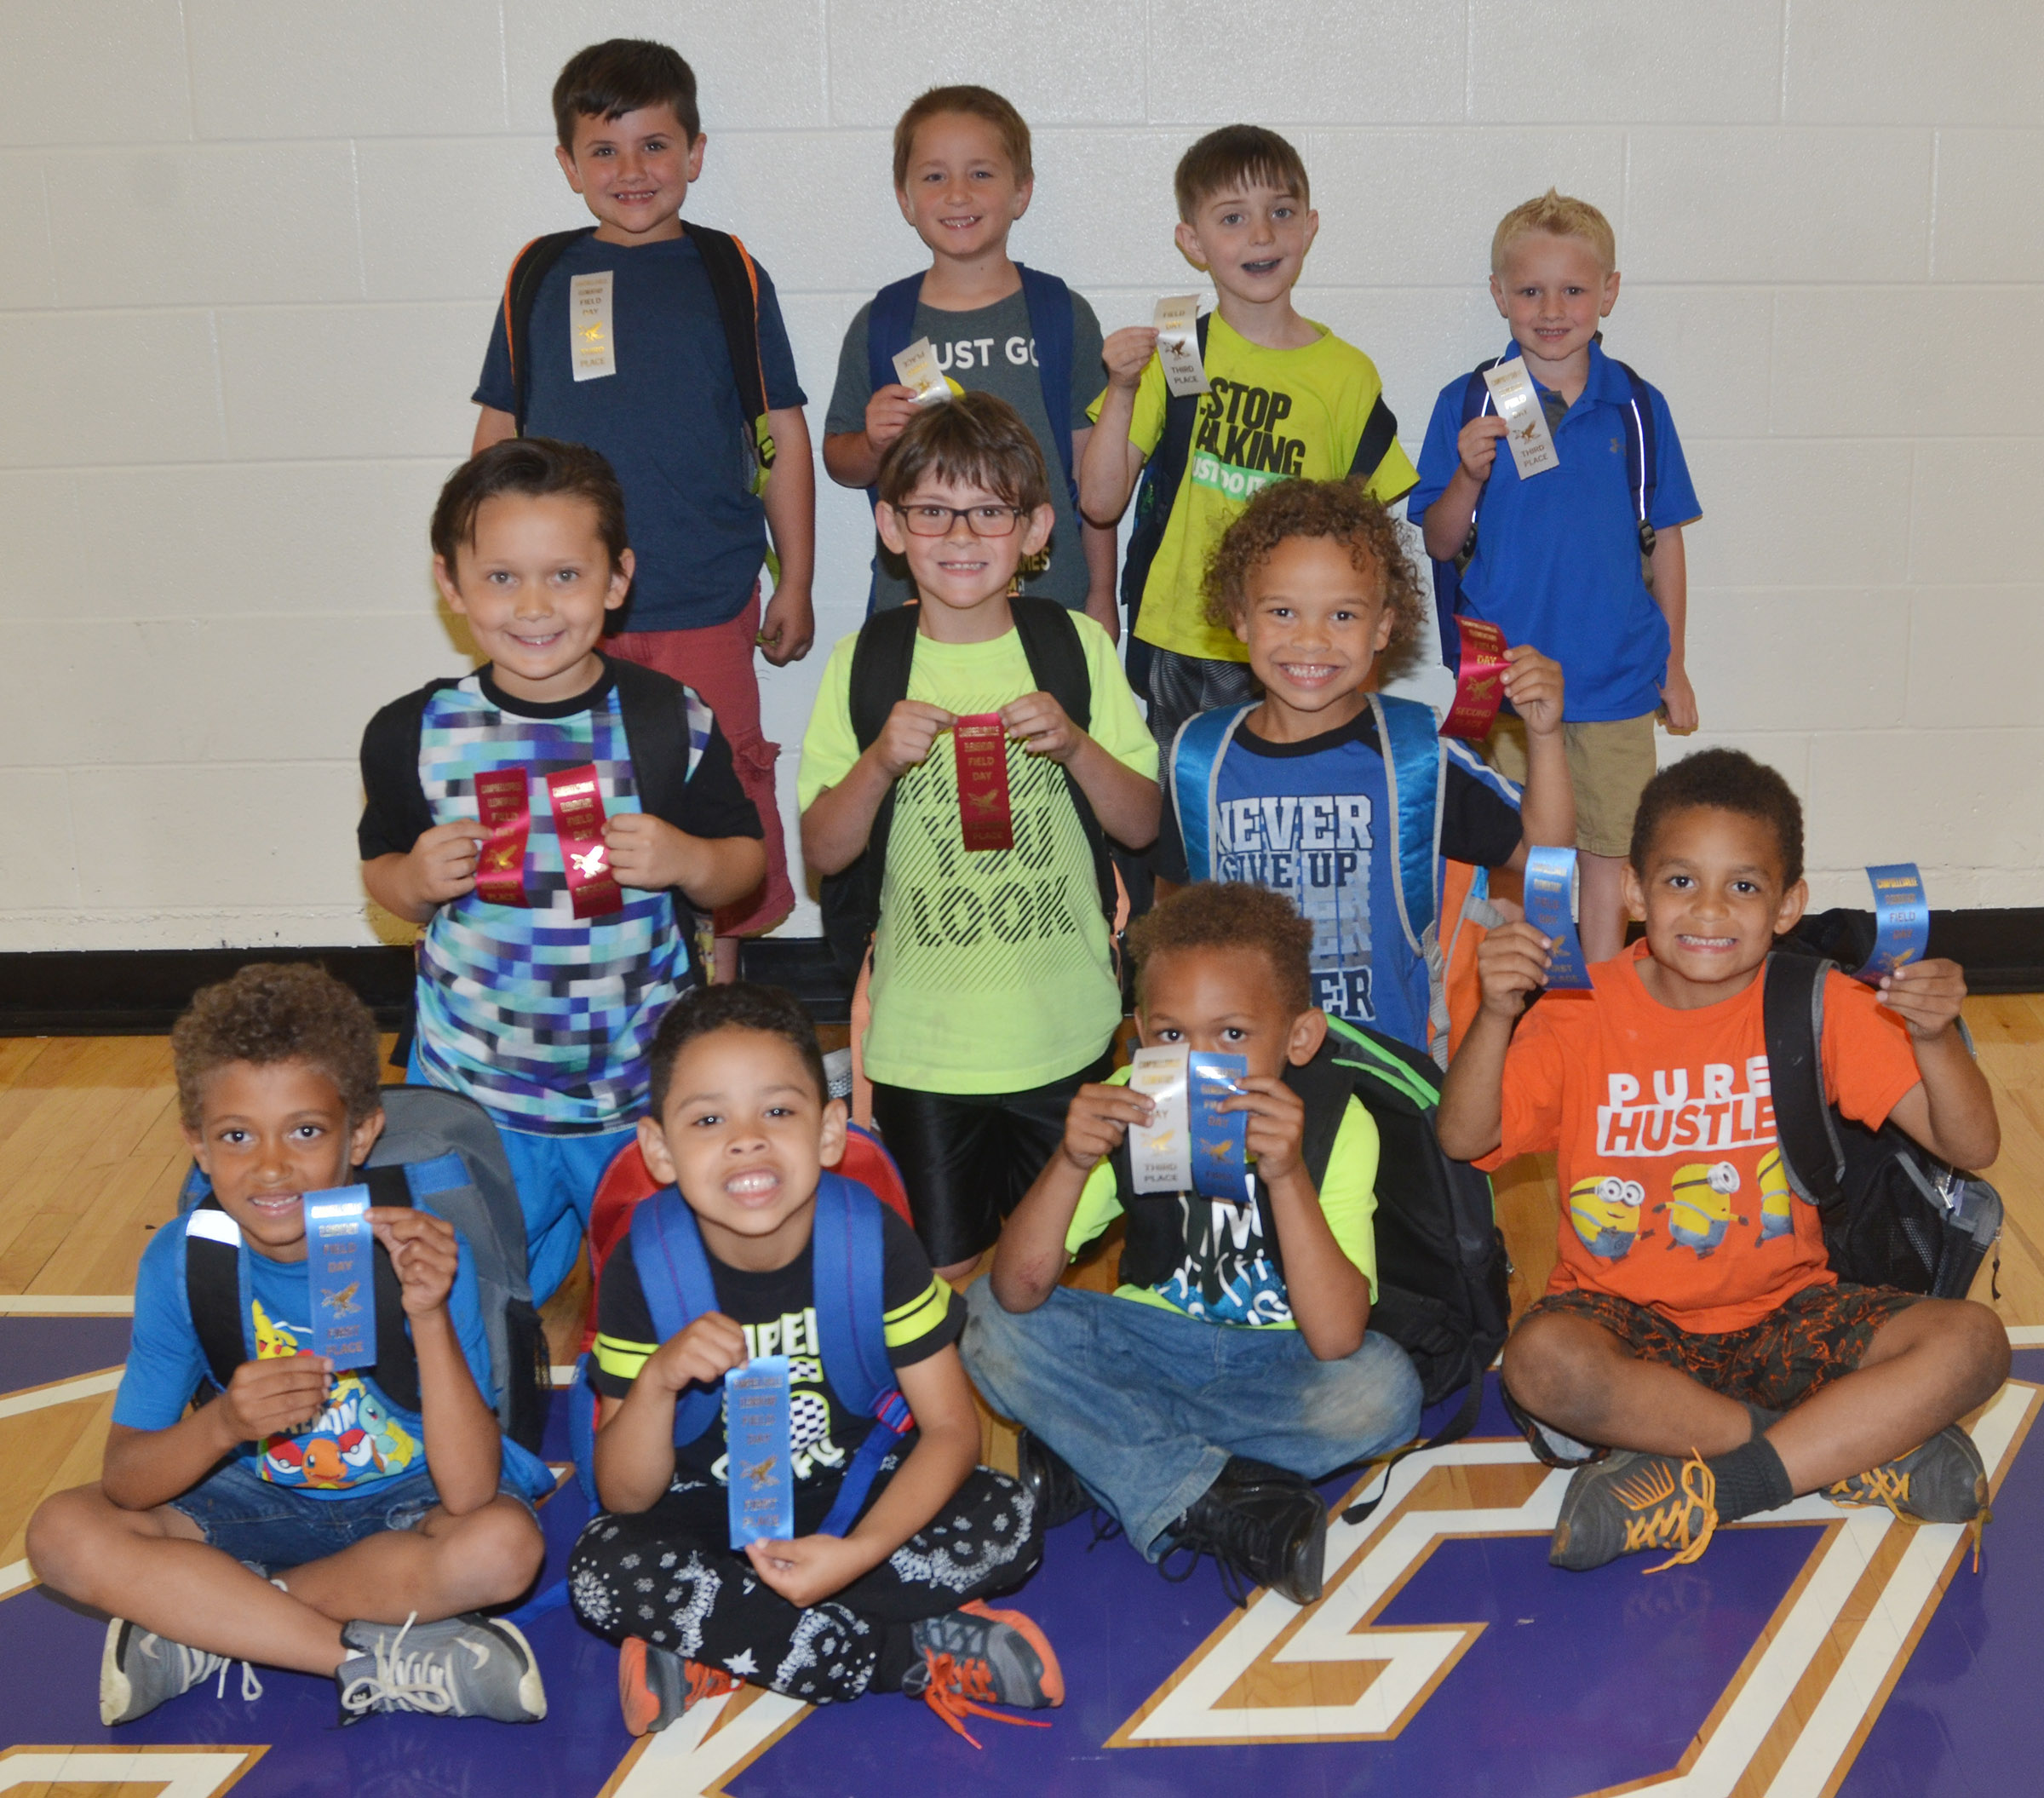 CES kindergarten boys who were classroom winners in the 50-yard dash are, from left, front, Tyce Owens, Demarcus Noyola, Treshaun Robinson and Quincy Travis, who were first place winners. Second row, Karter Young, Bentley Shively and Dyra Welch, who were second place winners. Back, Casen Meredith, Kaiden Bradfield, Caleb Goodson and Jackson Wright, who were third place winners. Absent from the photo is second place winner Zane Mullins. Overall, Quincy Travis was first, Karter Young was second and Treshaun Robinson was third.